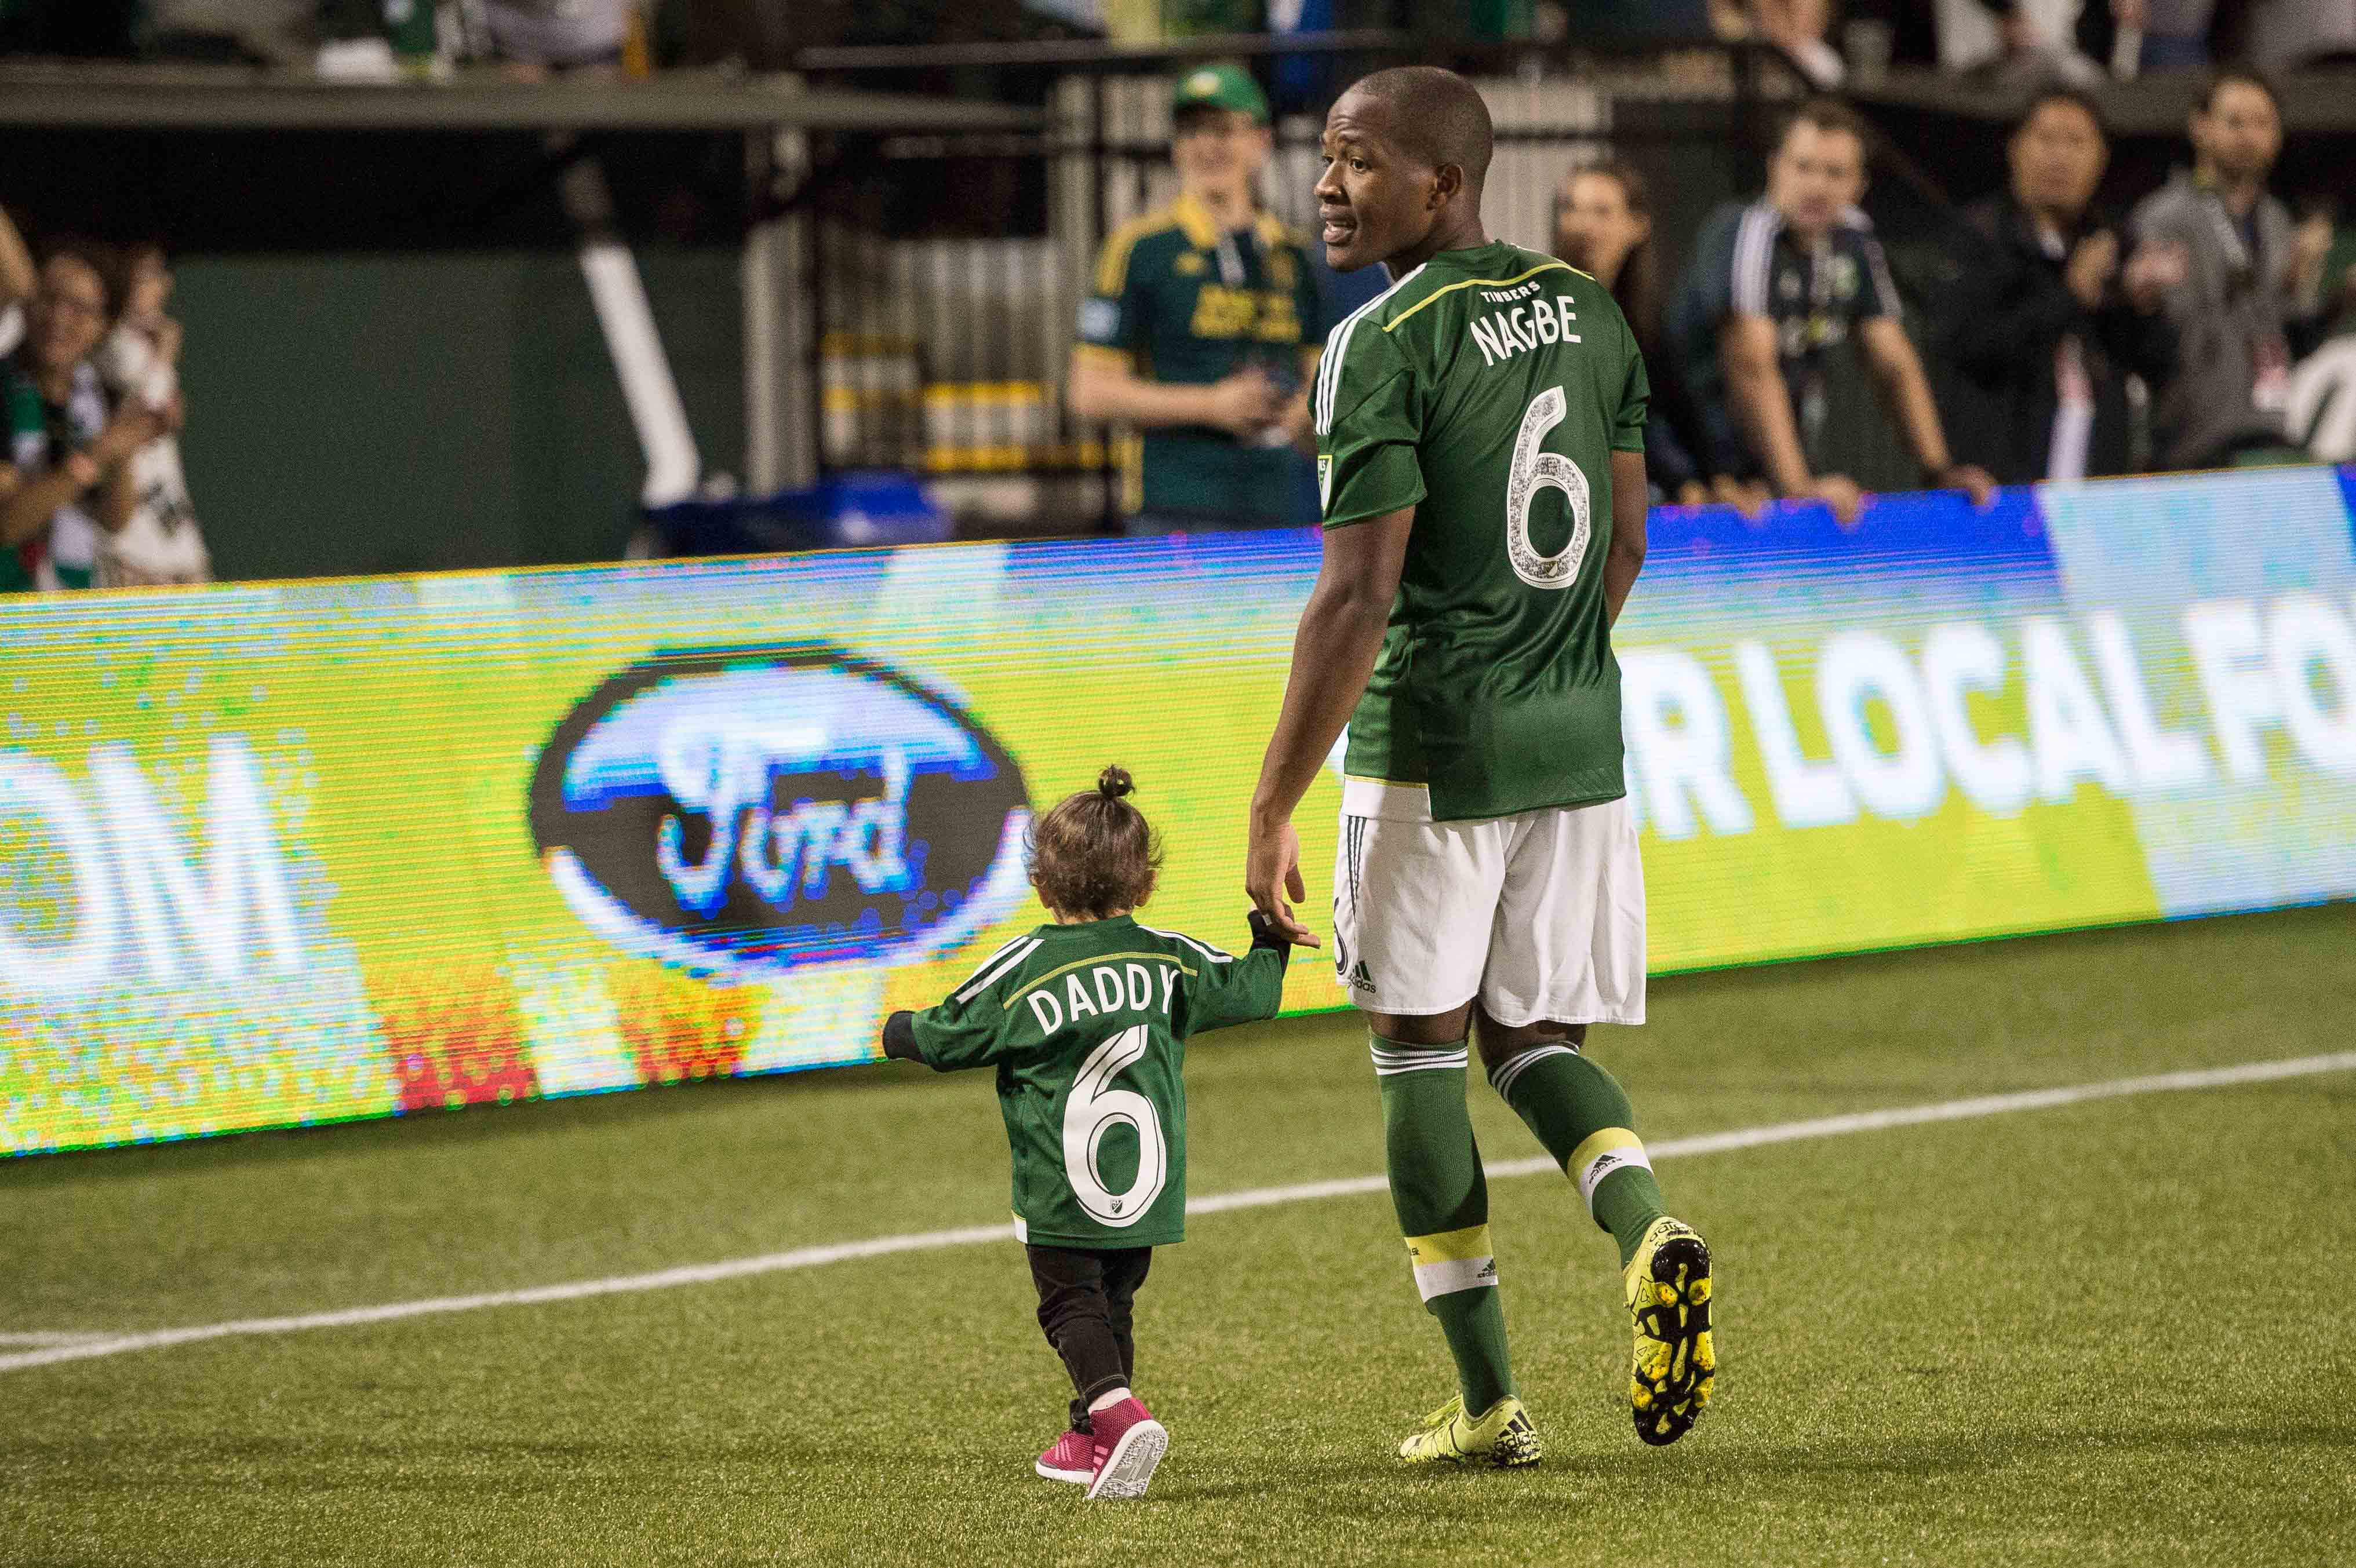 Darlington Nagbe could be eligible to play for the USMNT by mid-September.